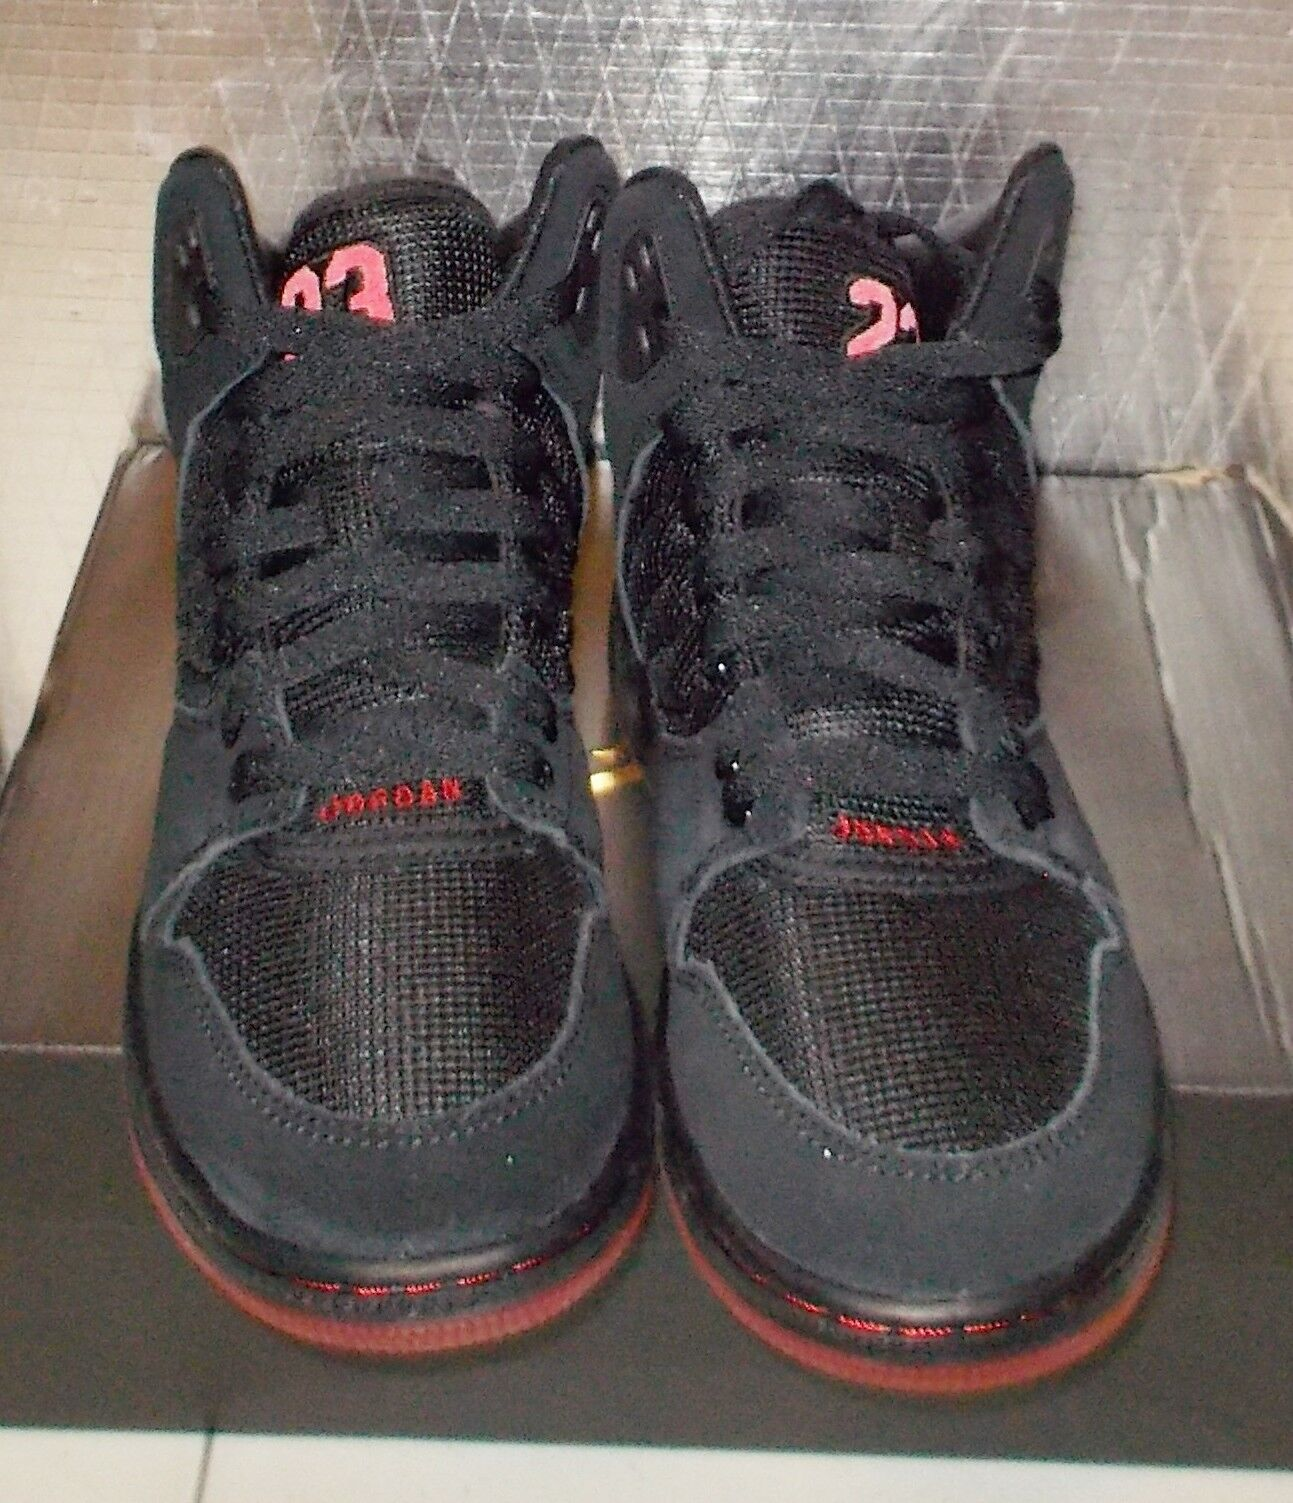 NIKE JORDAN 1 1 1 FLIGHT 4 PREM PREMIUM BG Womens 5.5 (4Y) Black Red 828237 060 NEW 091c37